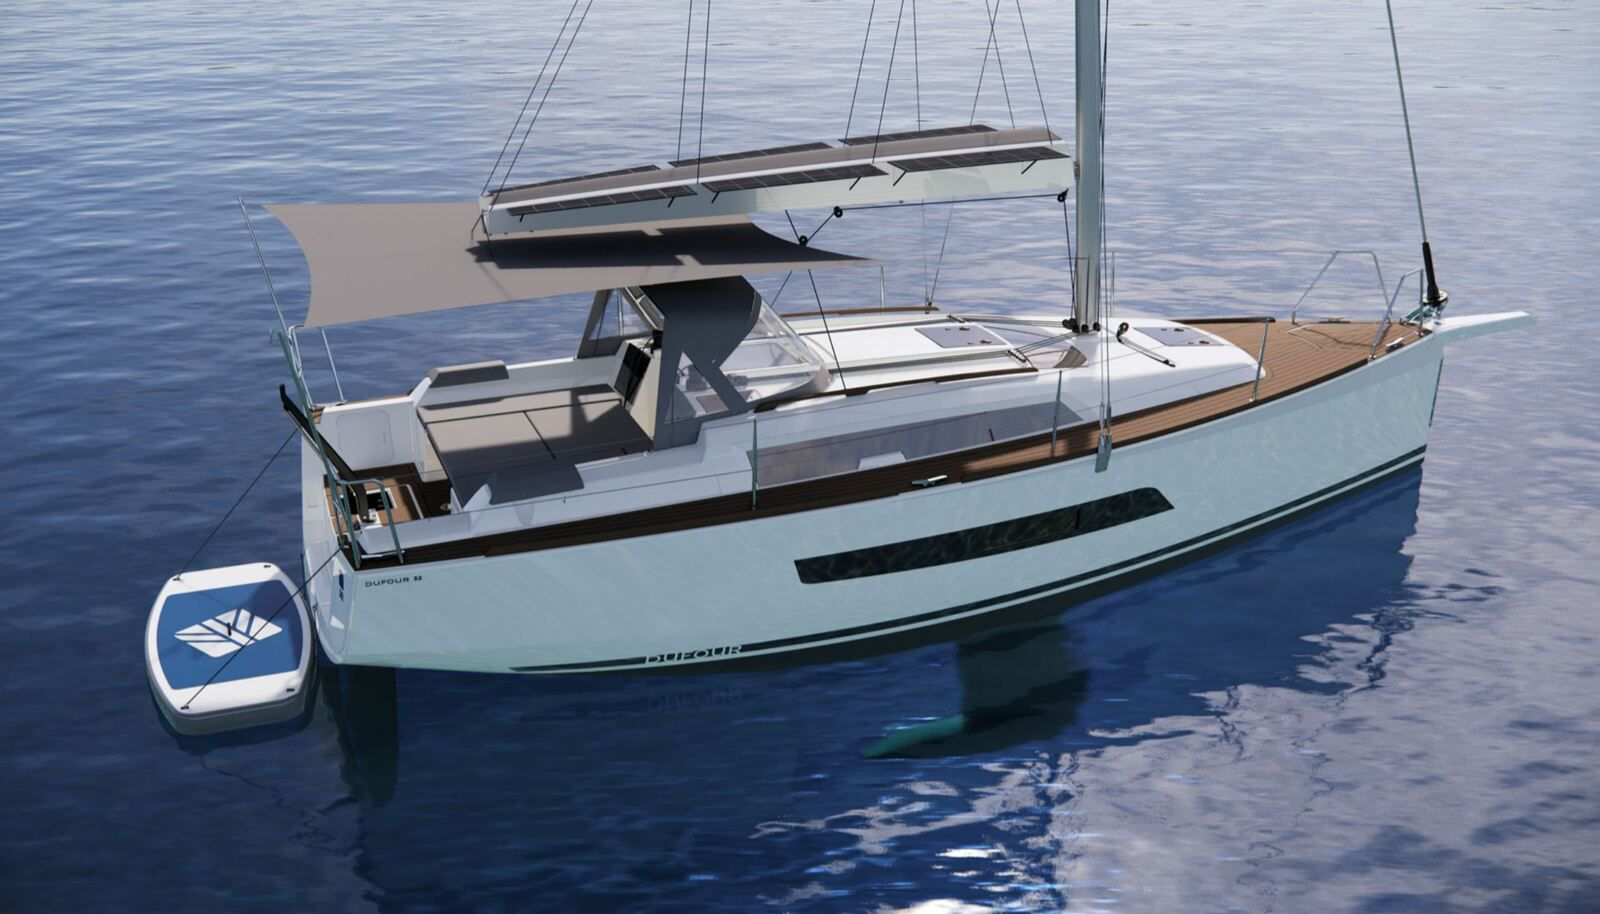 New sailing boat 2021 - the Dufour 32, the sailing boat for friends